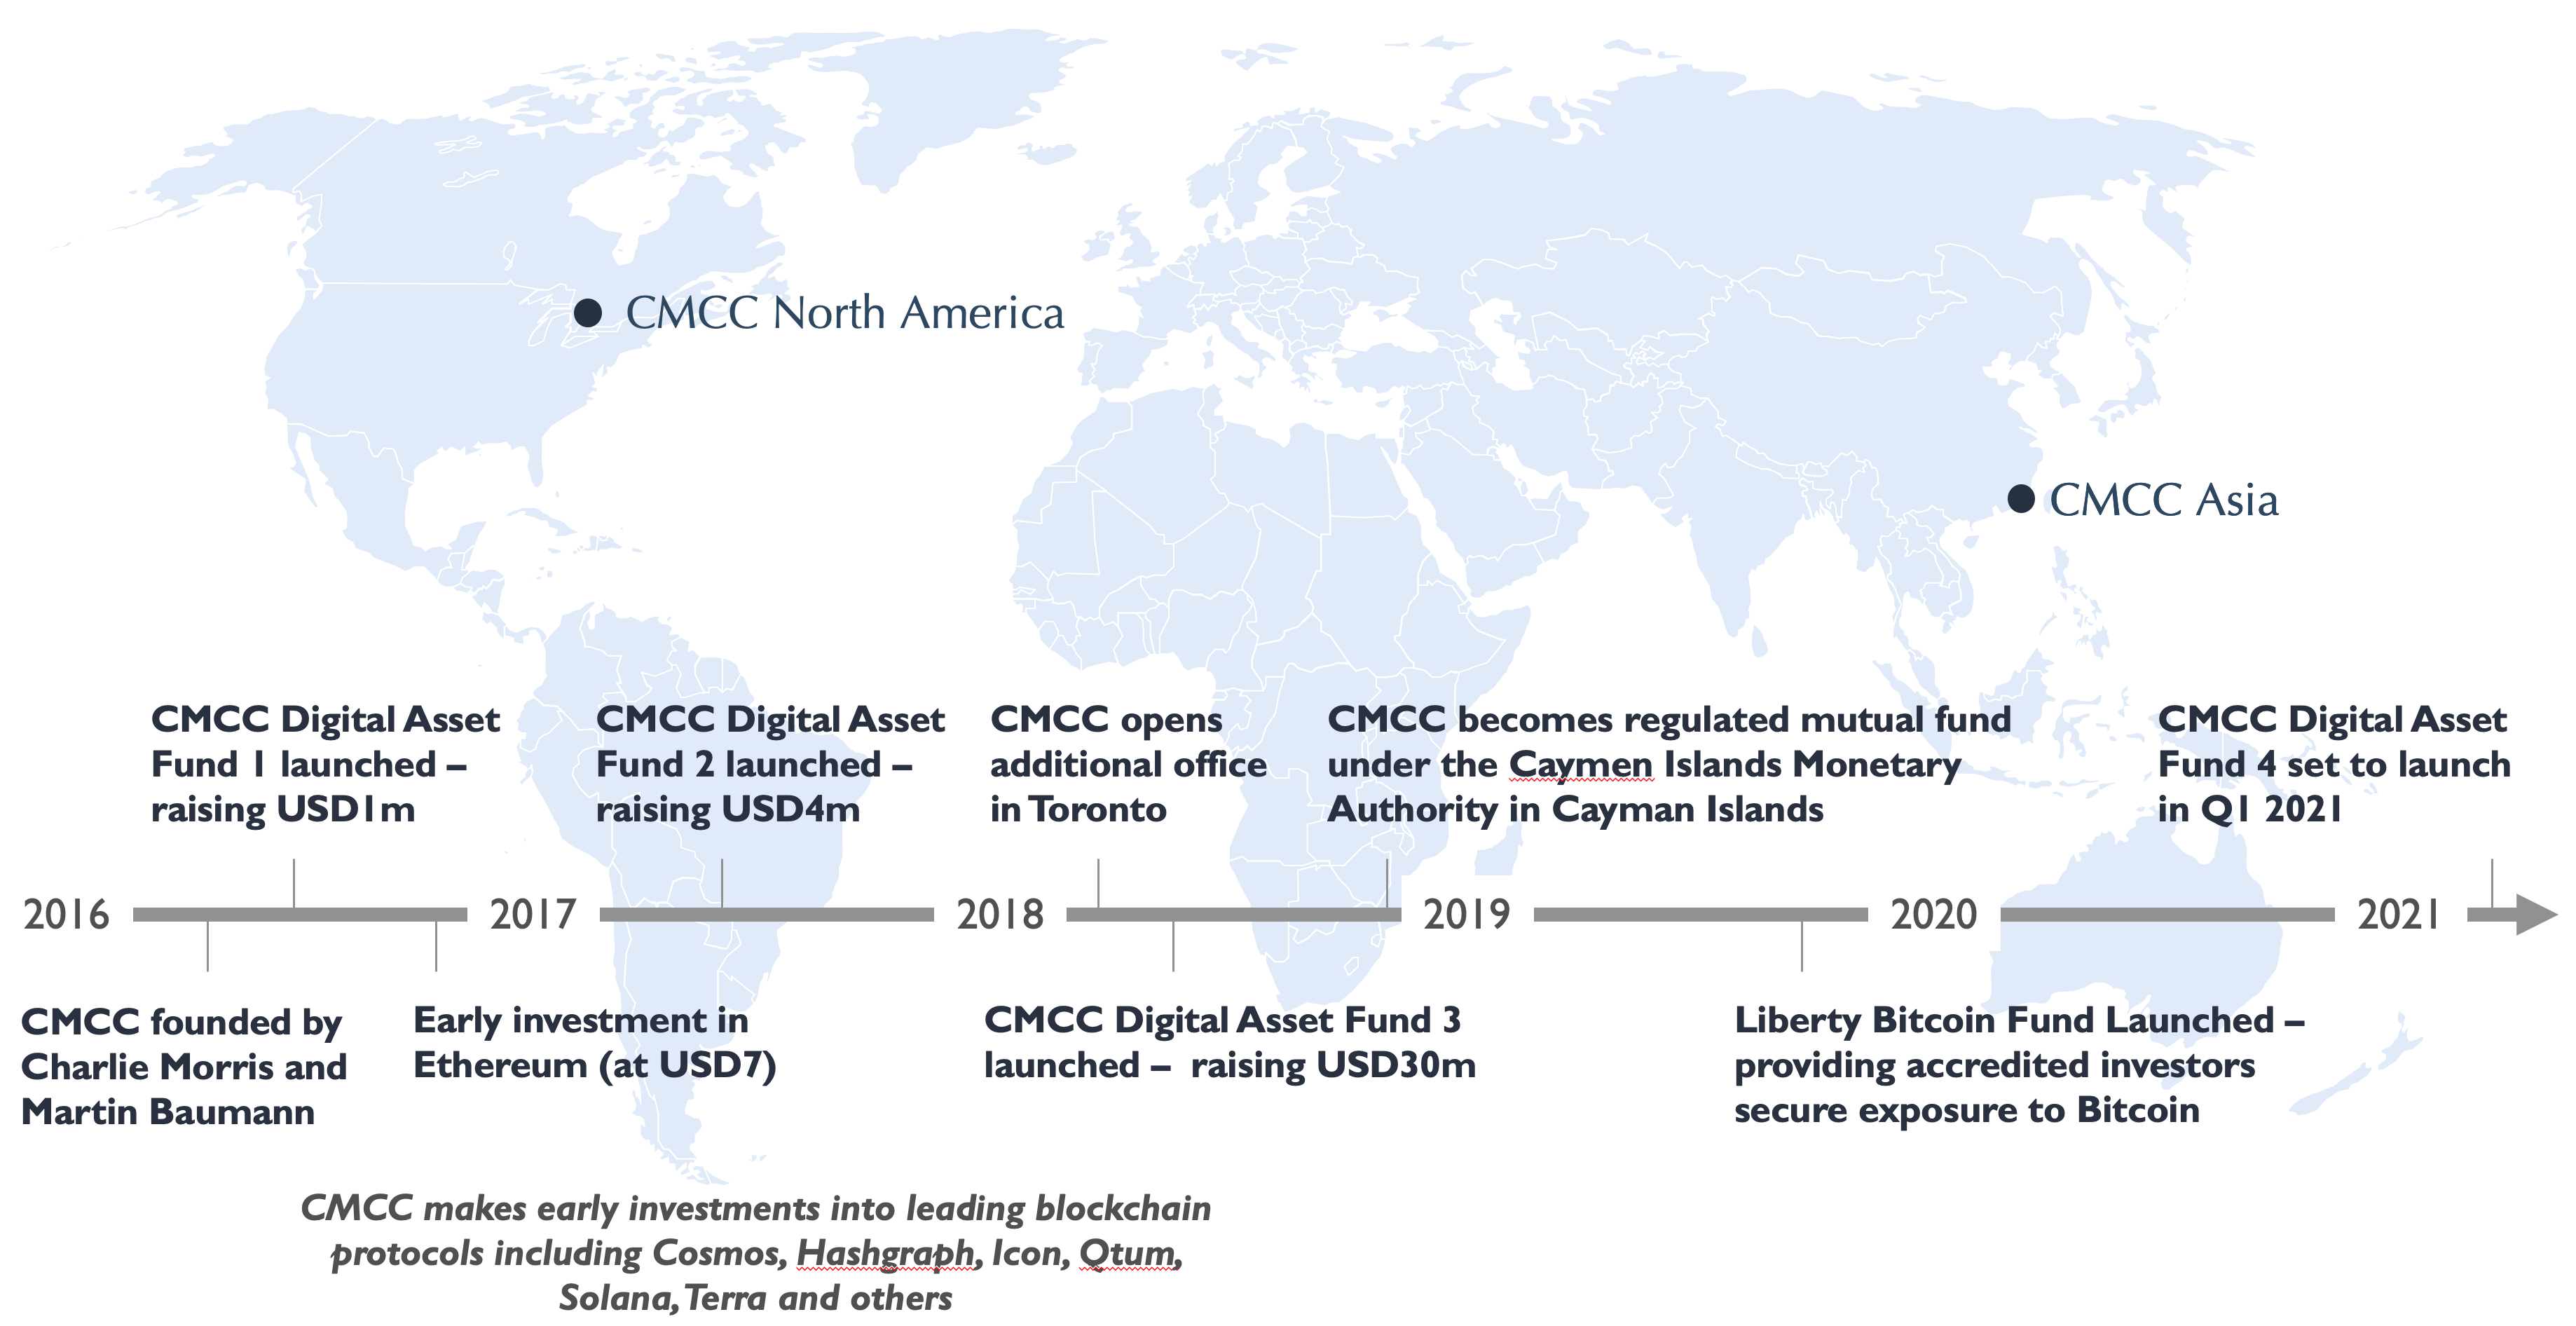 A history of CMCC Global